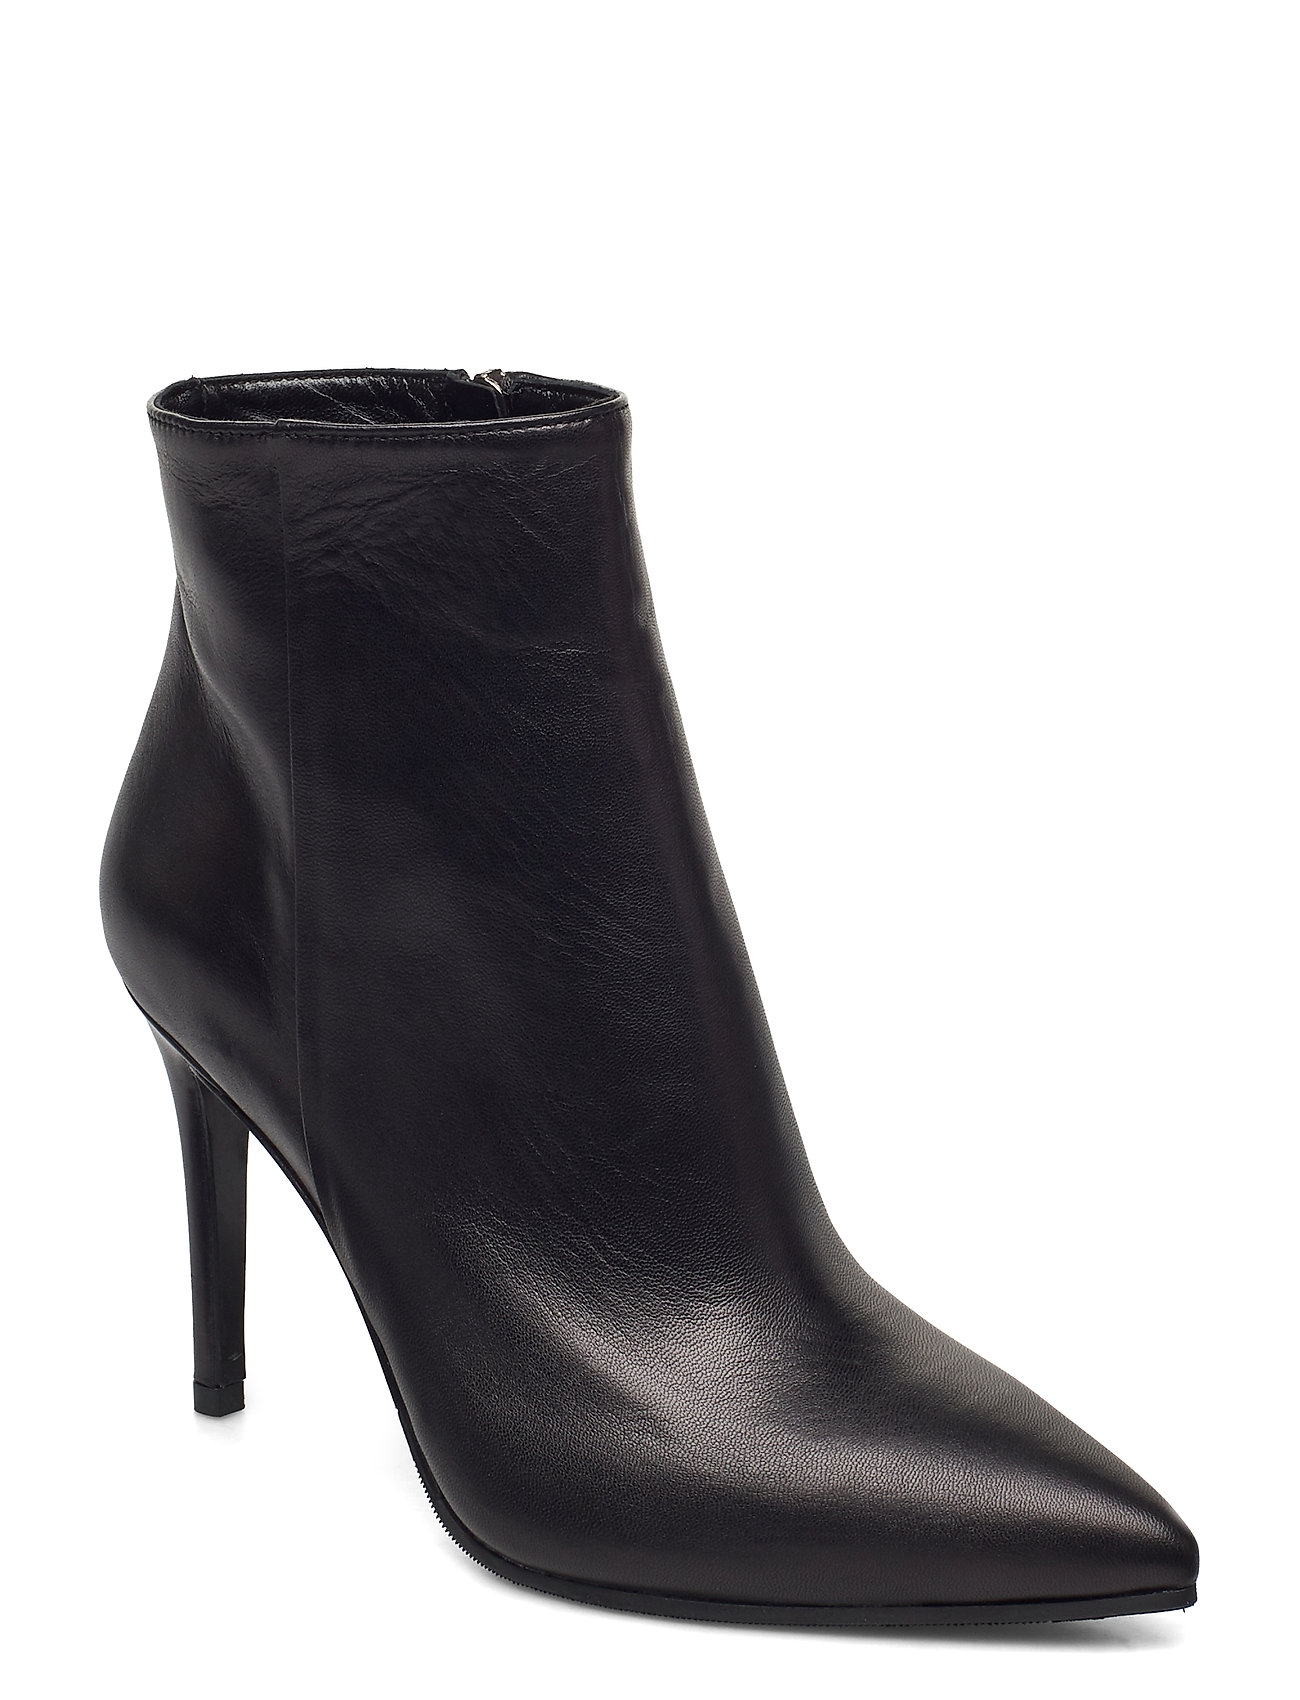 Image of High Stiletto Bootie Shoes Boots Ankle Boots Ankle Boot - Heel Sort Apair (3453535719)